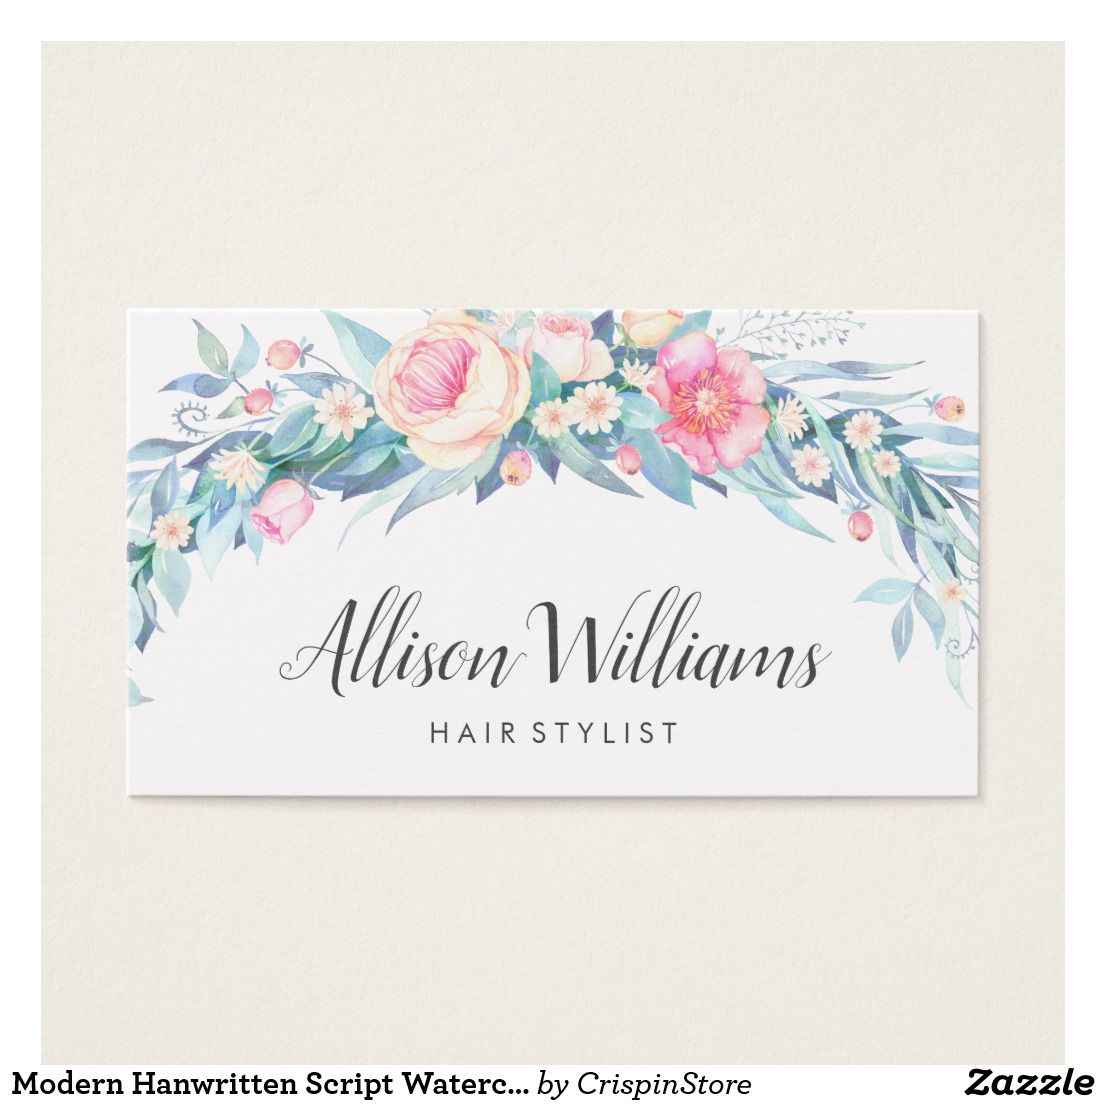 Modern Handwritten Script Watercolor Floral Business Card | Business ...